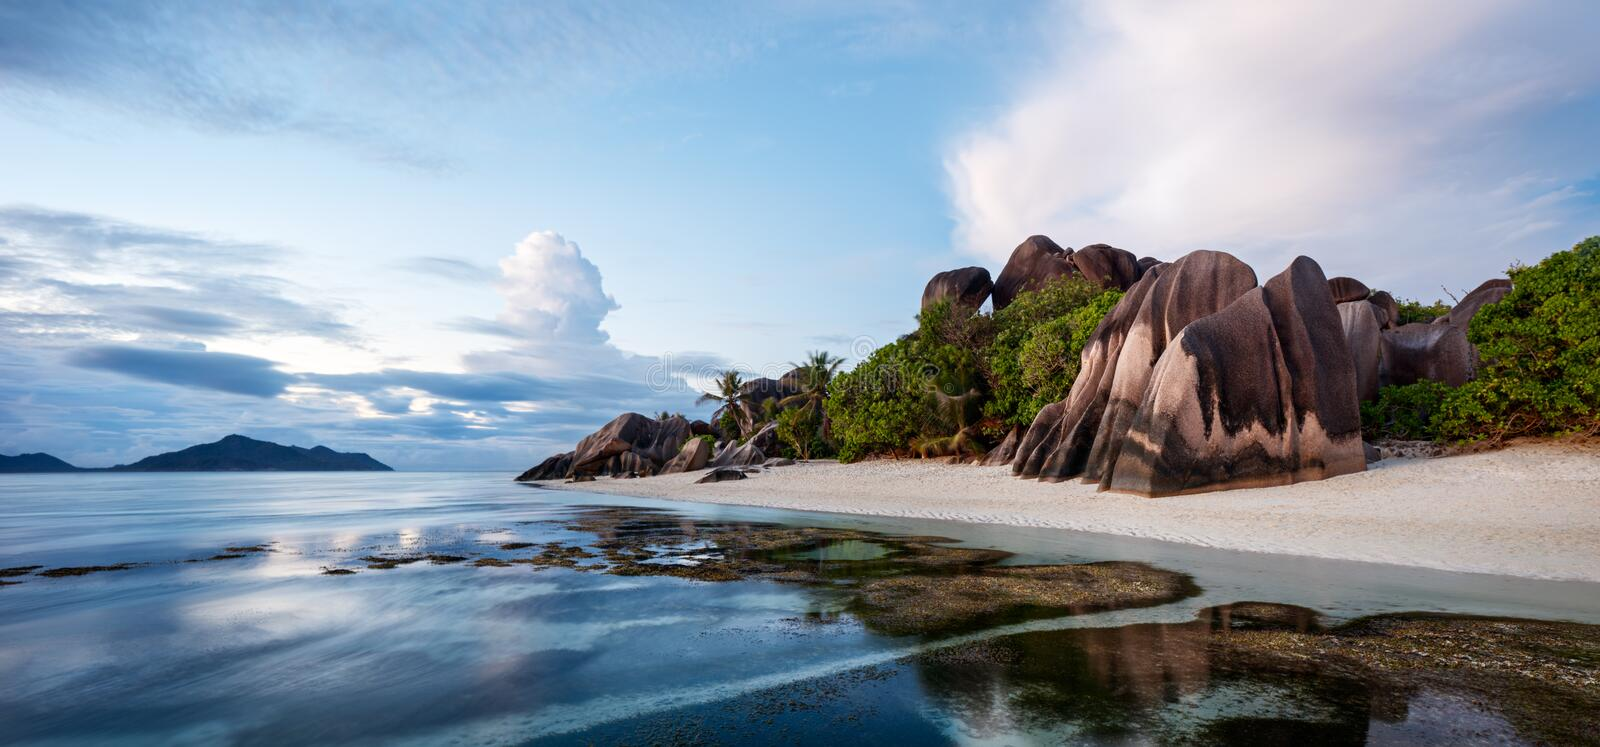 Palm and tropical sea beach panorama. Anse Source d `Argent, La Digue island, Seychelles royalty free stock photo